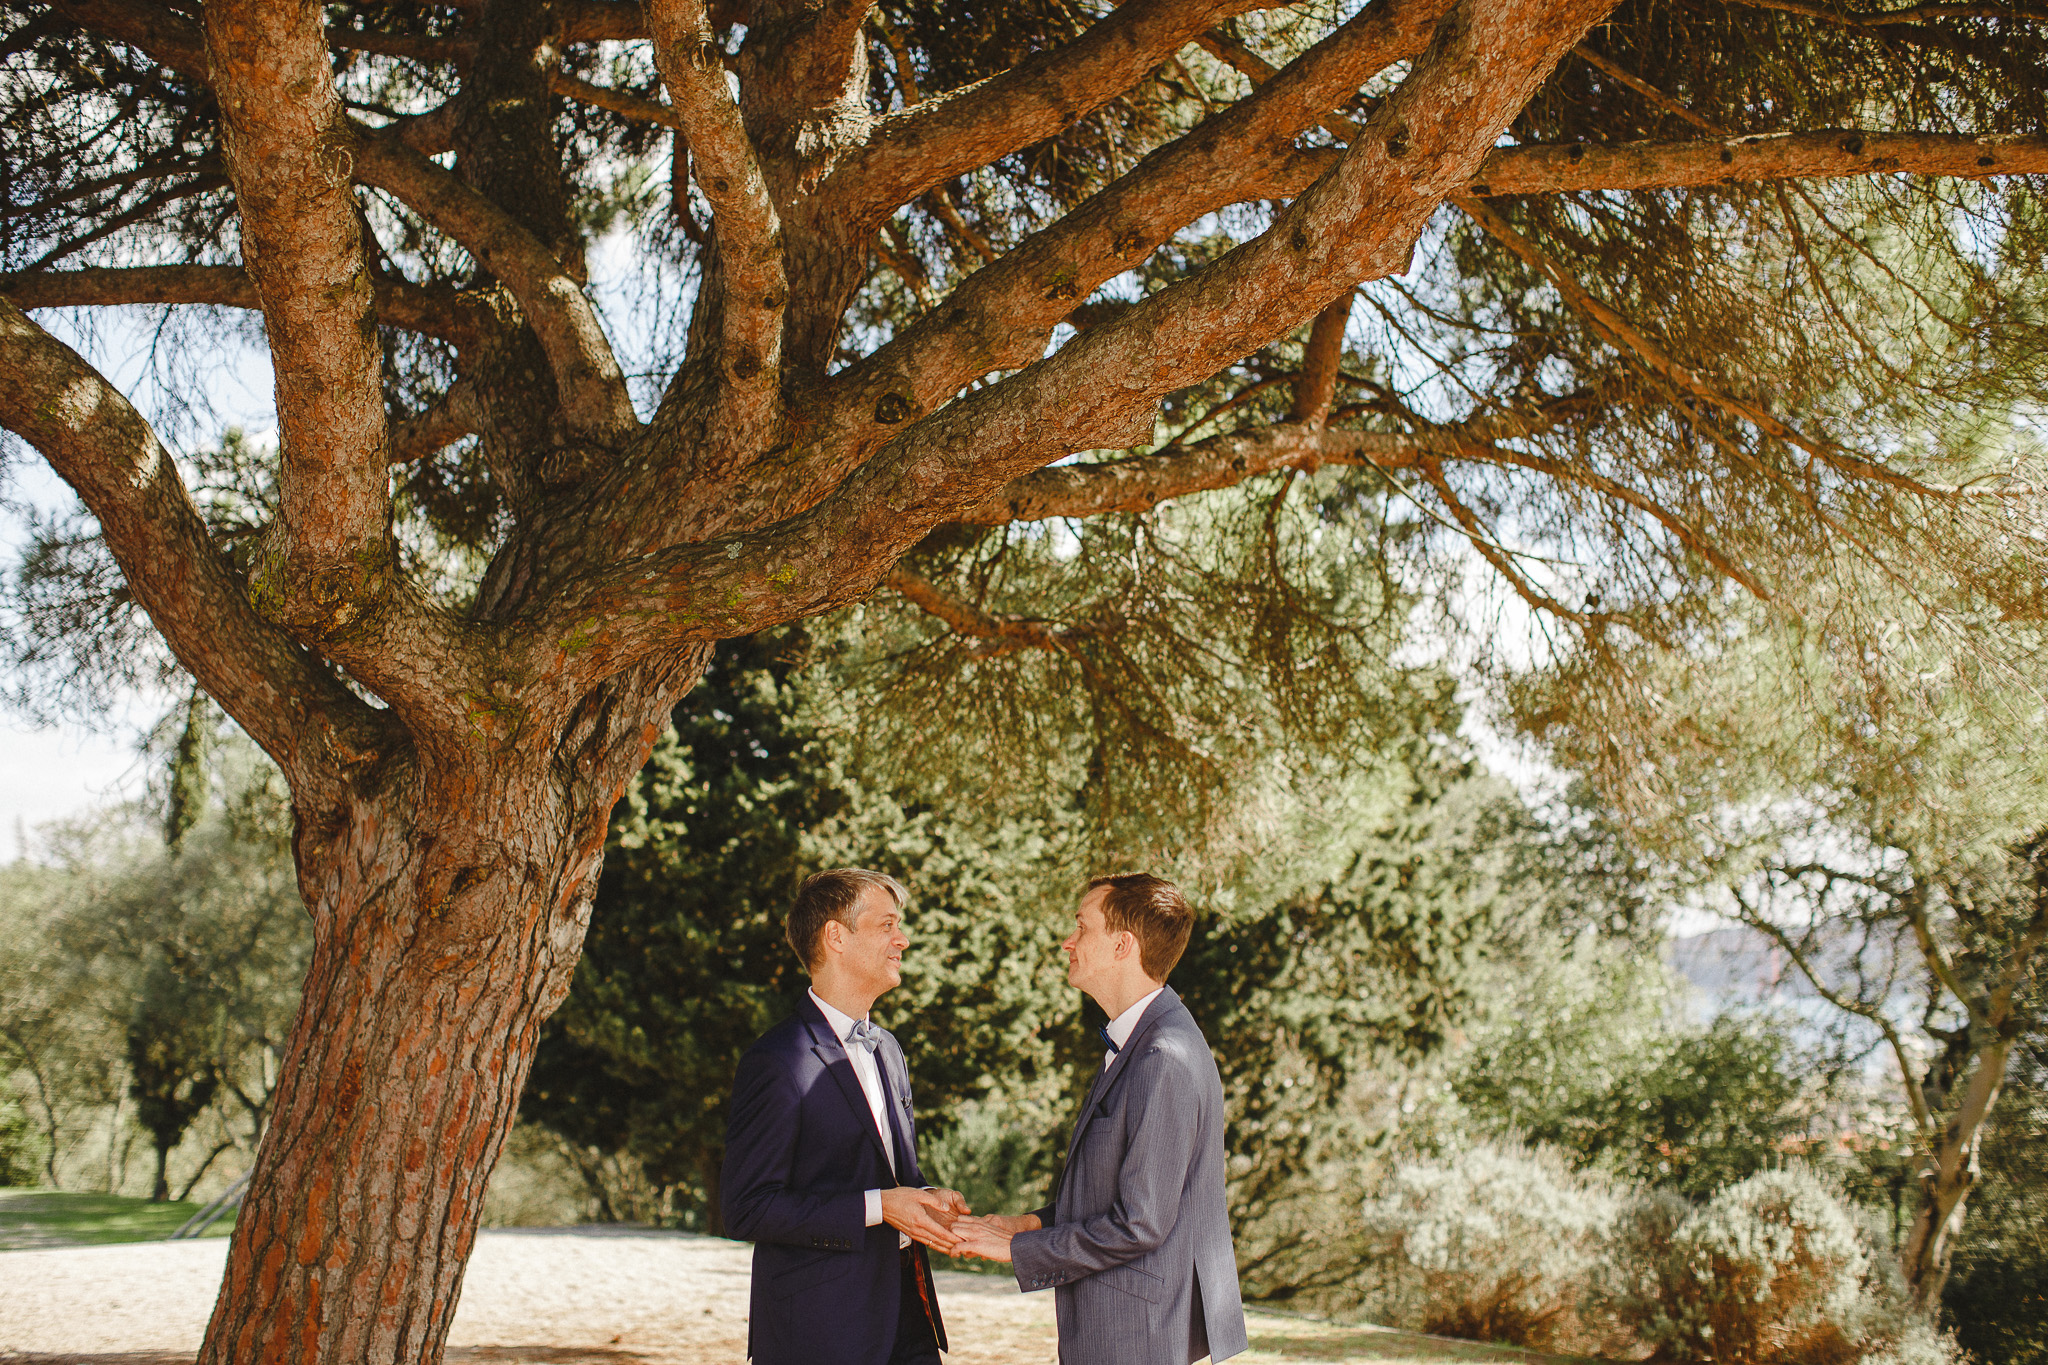 A couple stands under a tree touching hands after their wedding ceremony.